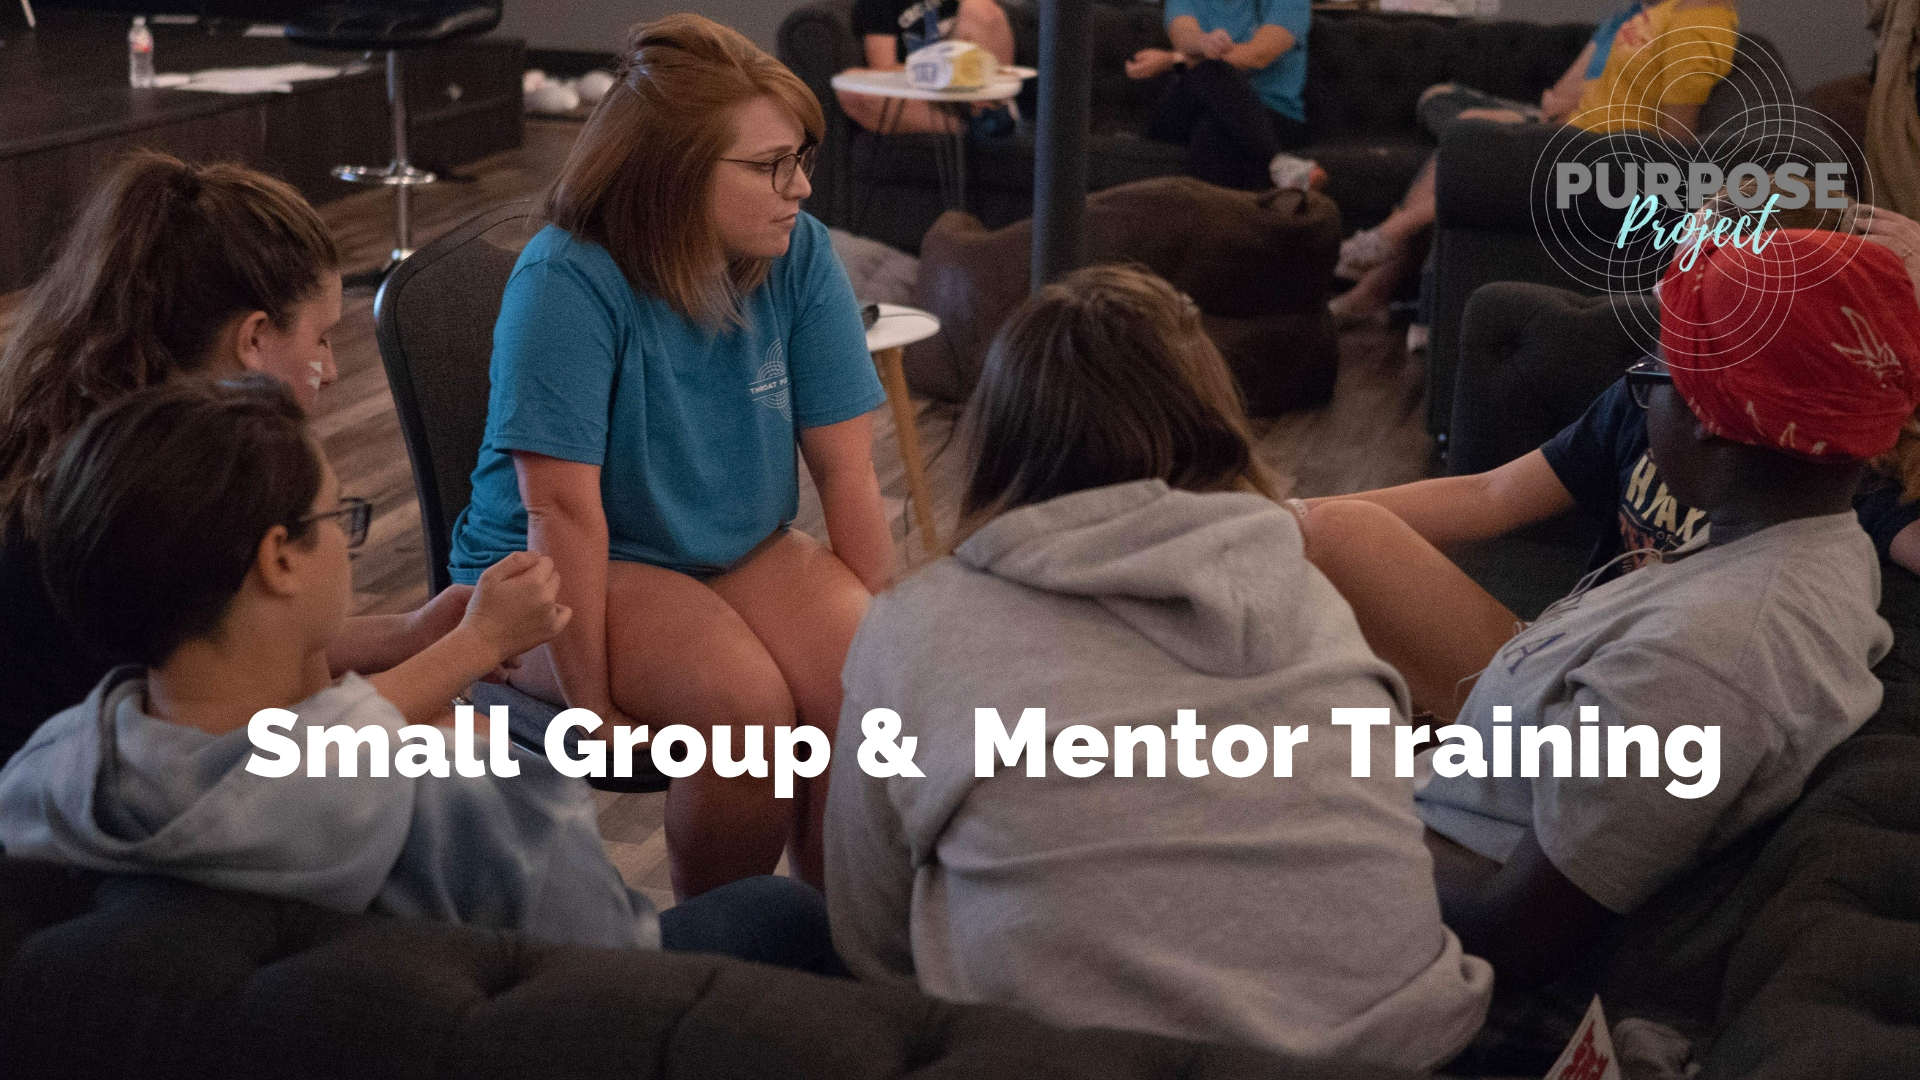 Small Group & Mentor Training.jpg